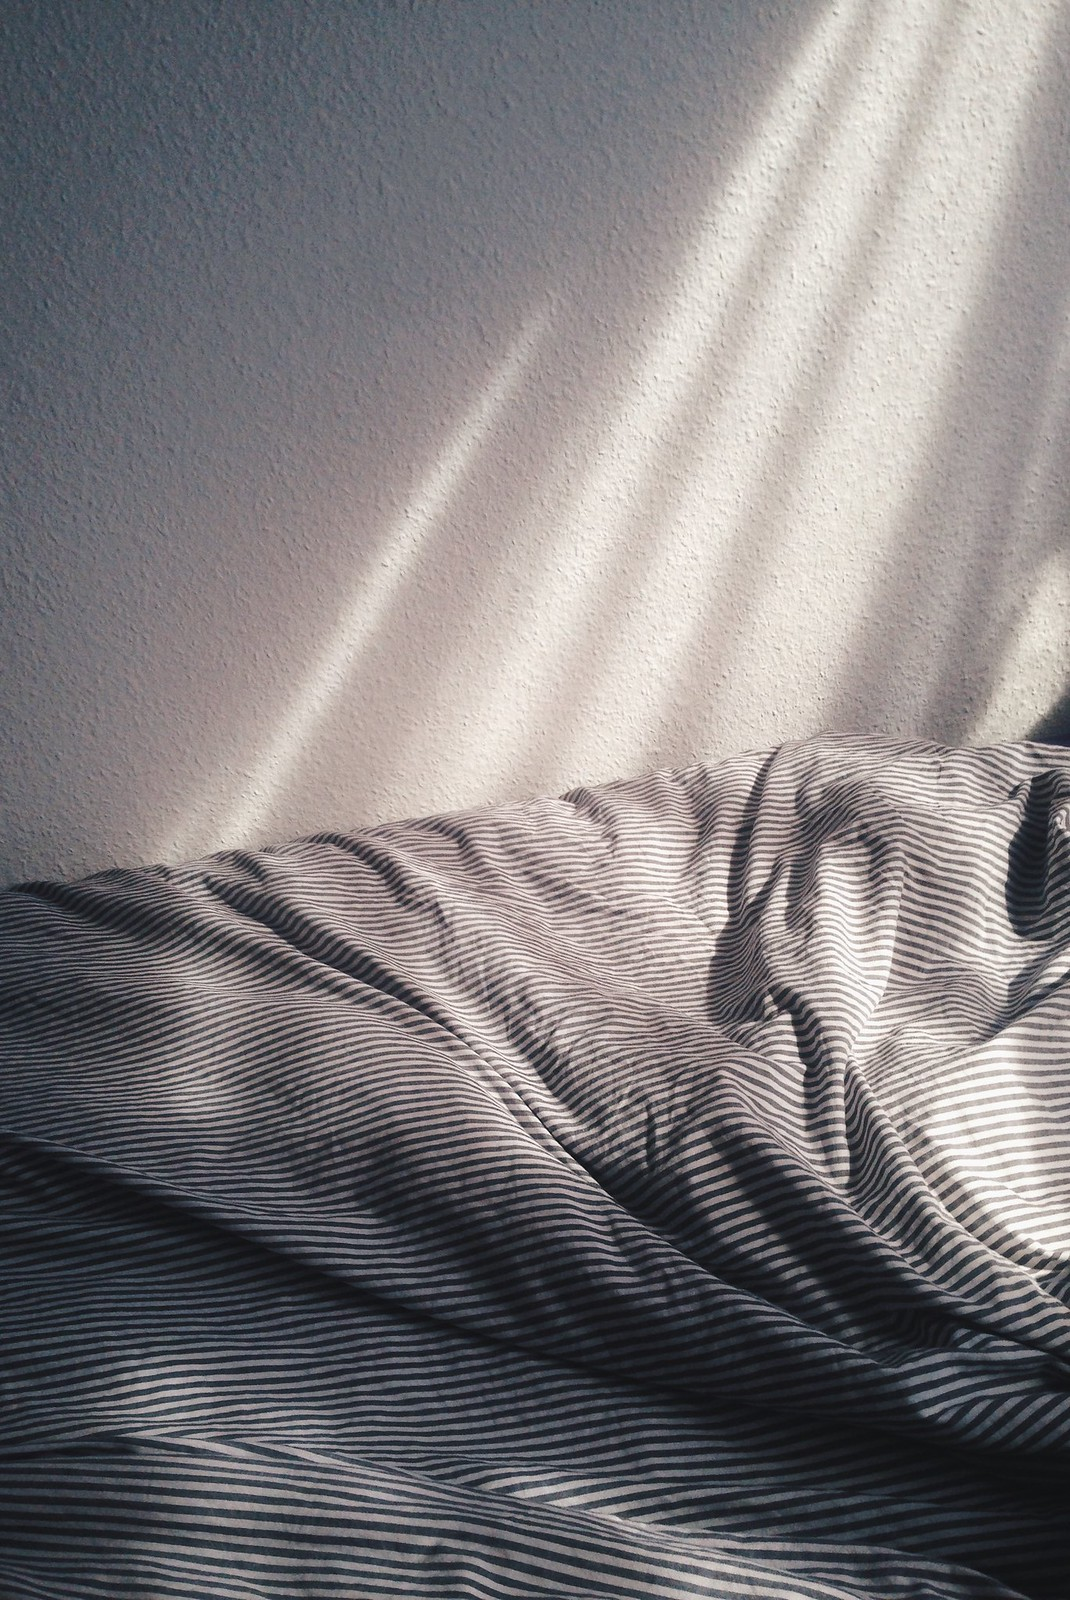 Bed Sheets, Visual Diary on The Curly Head, a Blog from Munich, Photography by Amelie Niederbuchner